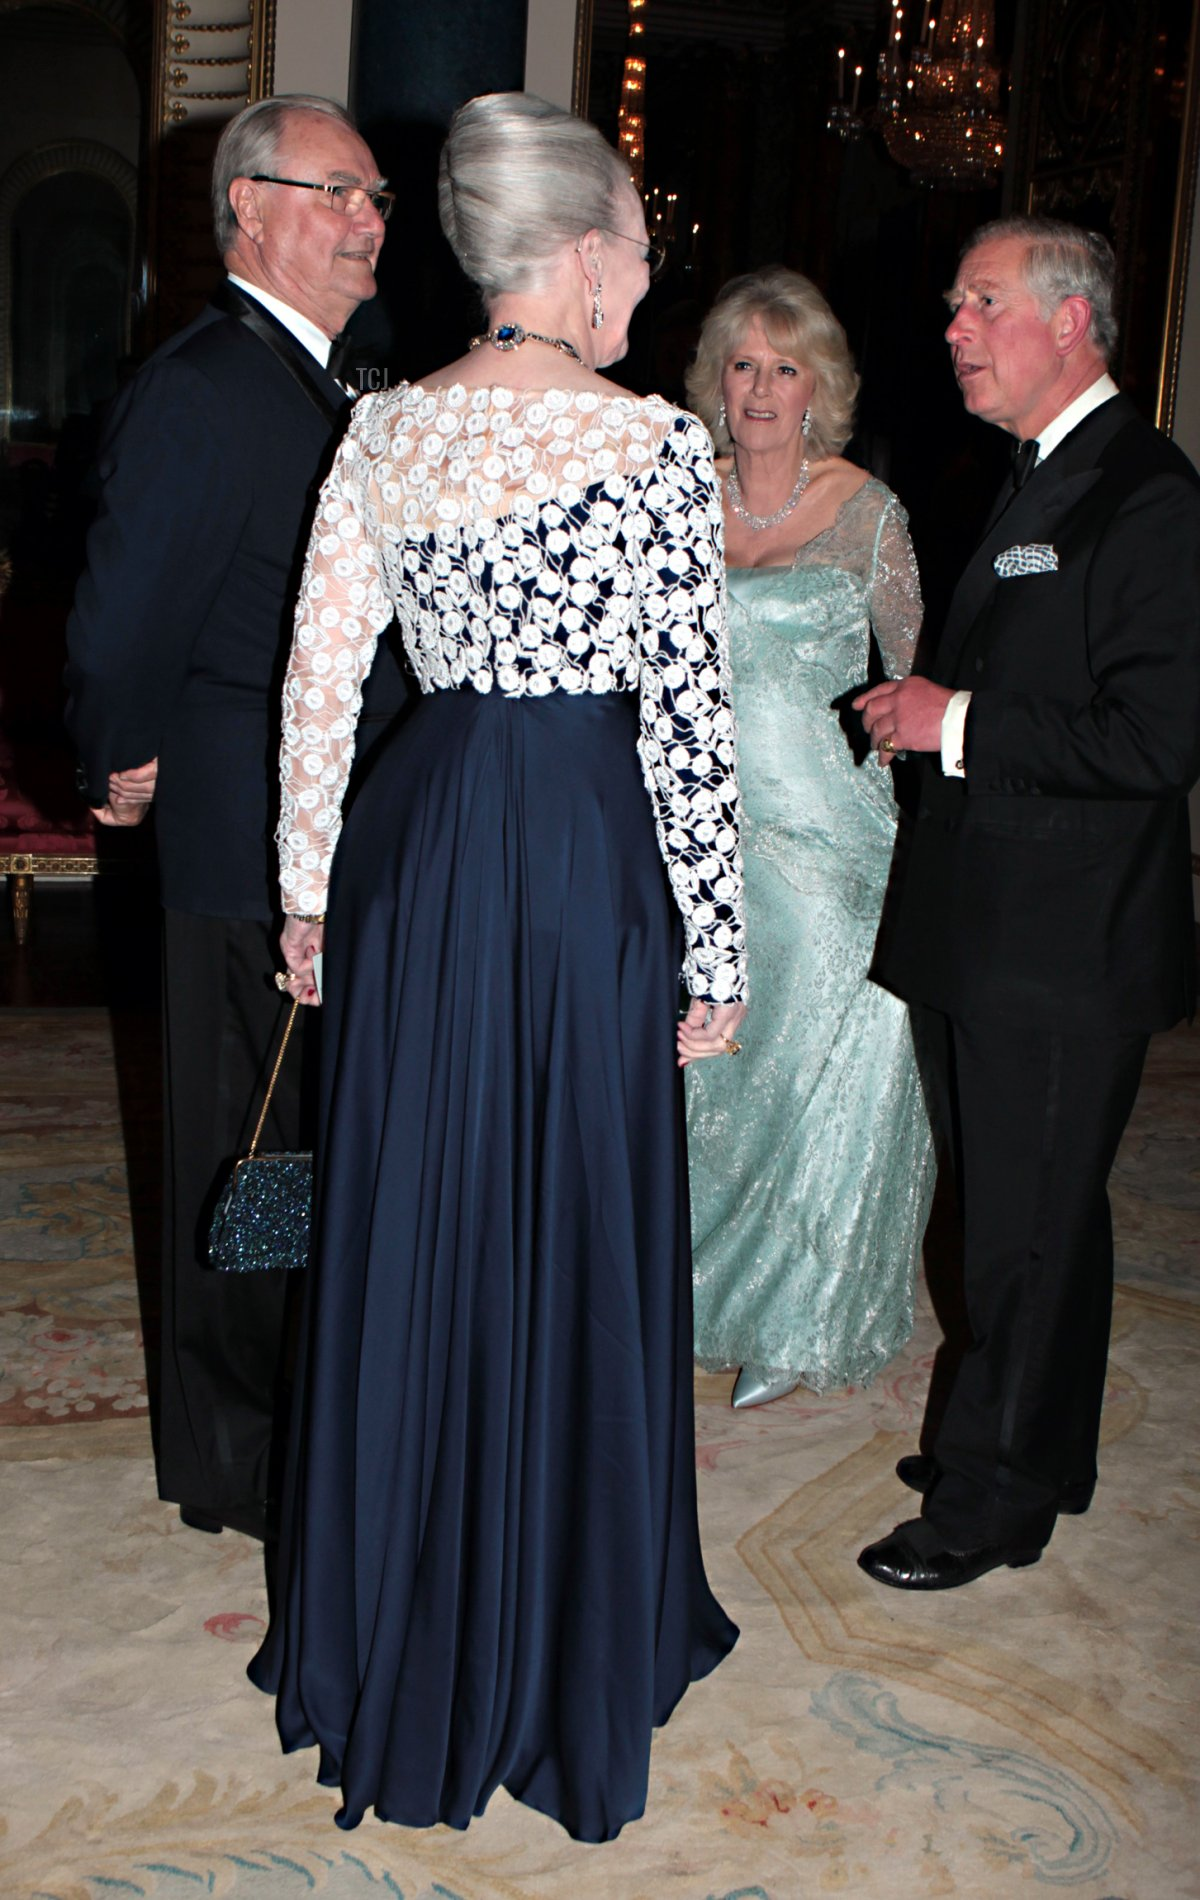 Prince Charles, Prince of Wales and Camilla, Duchess of Cornwall greet Queen Margarethe II of Denmark and Prince Henrik of Denmark as they arrive for a dinner for foreign Sovereigns to commemorate the Diamond Jubilee at Buckingham Palace on May 18, 2012 in London, England